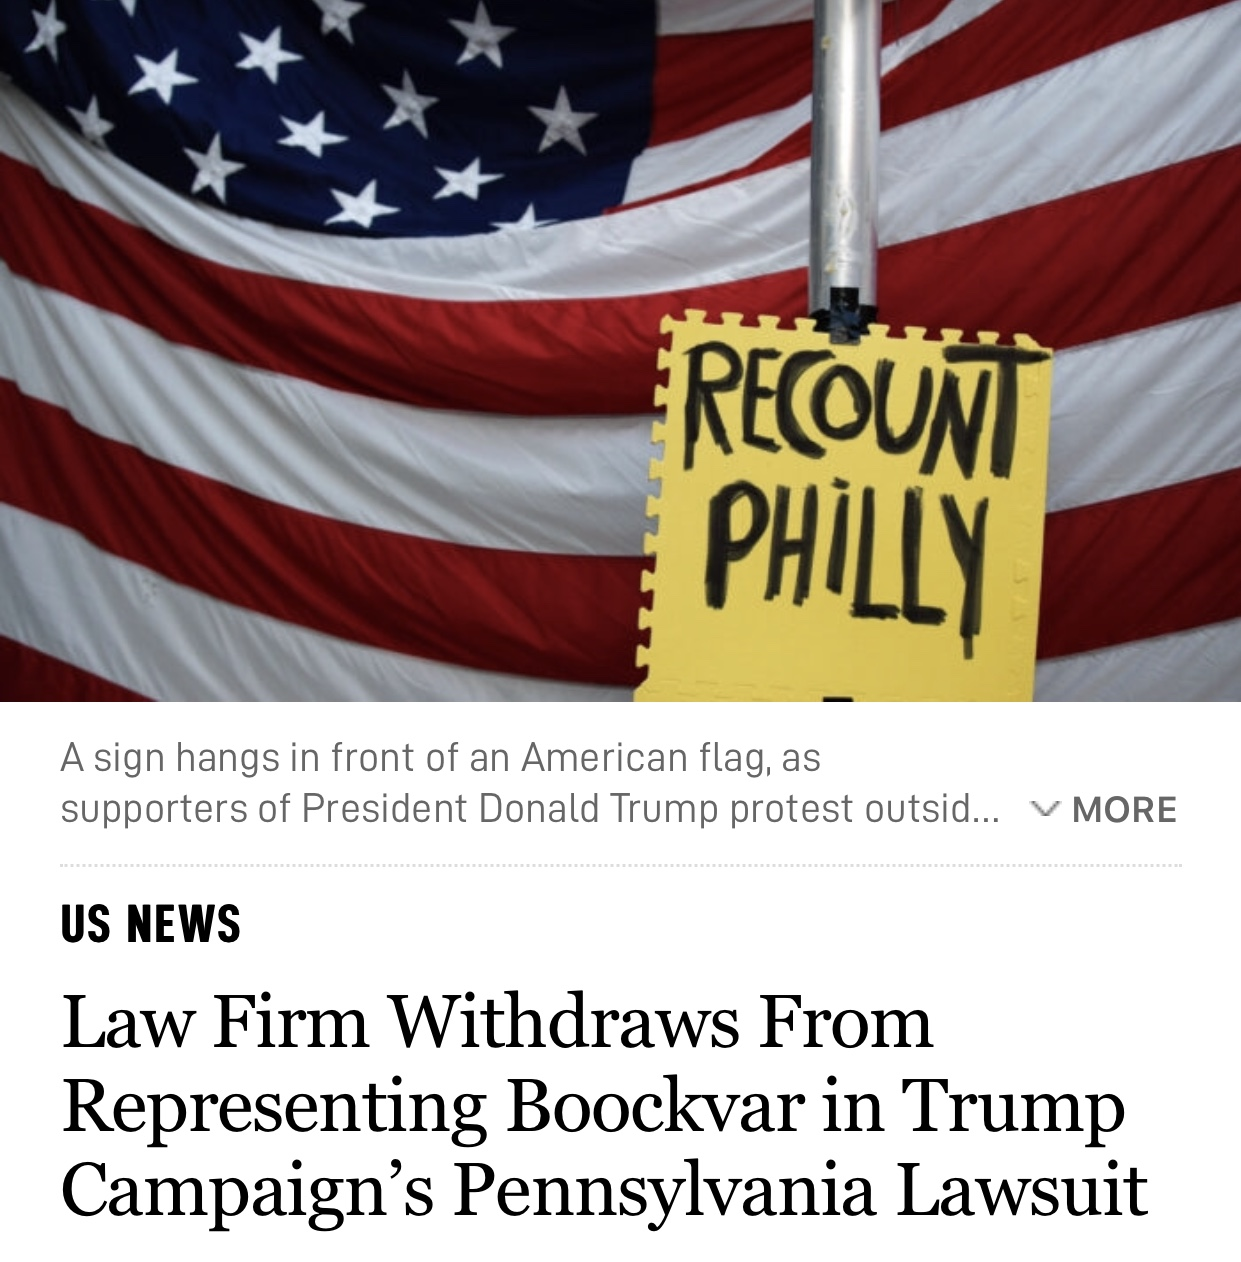 Law Firm Withdraws From Representing Boockvar in Trump Campaign's Pennsylvania Lawsuit